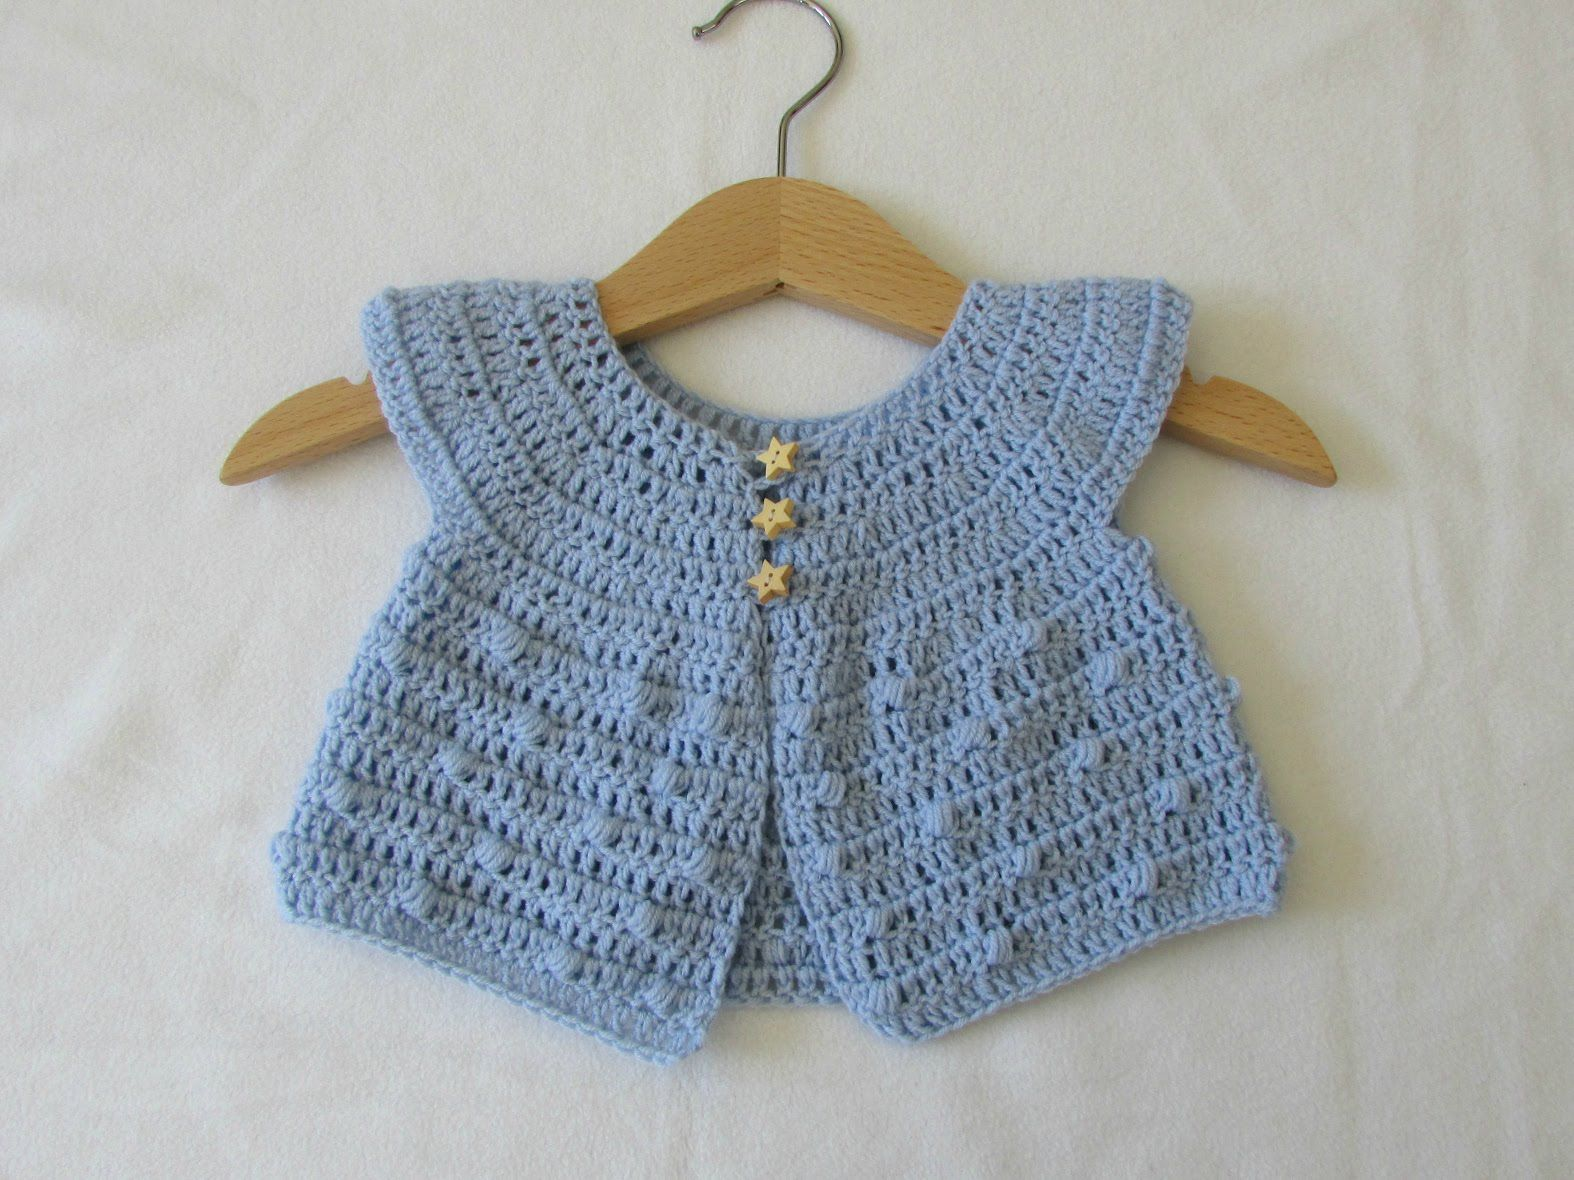 How to crochet a baby bobble stitch cardigan / sweater